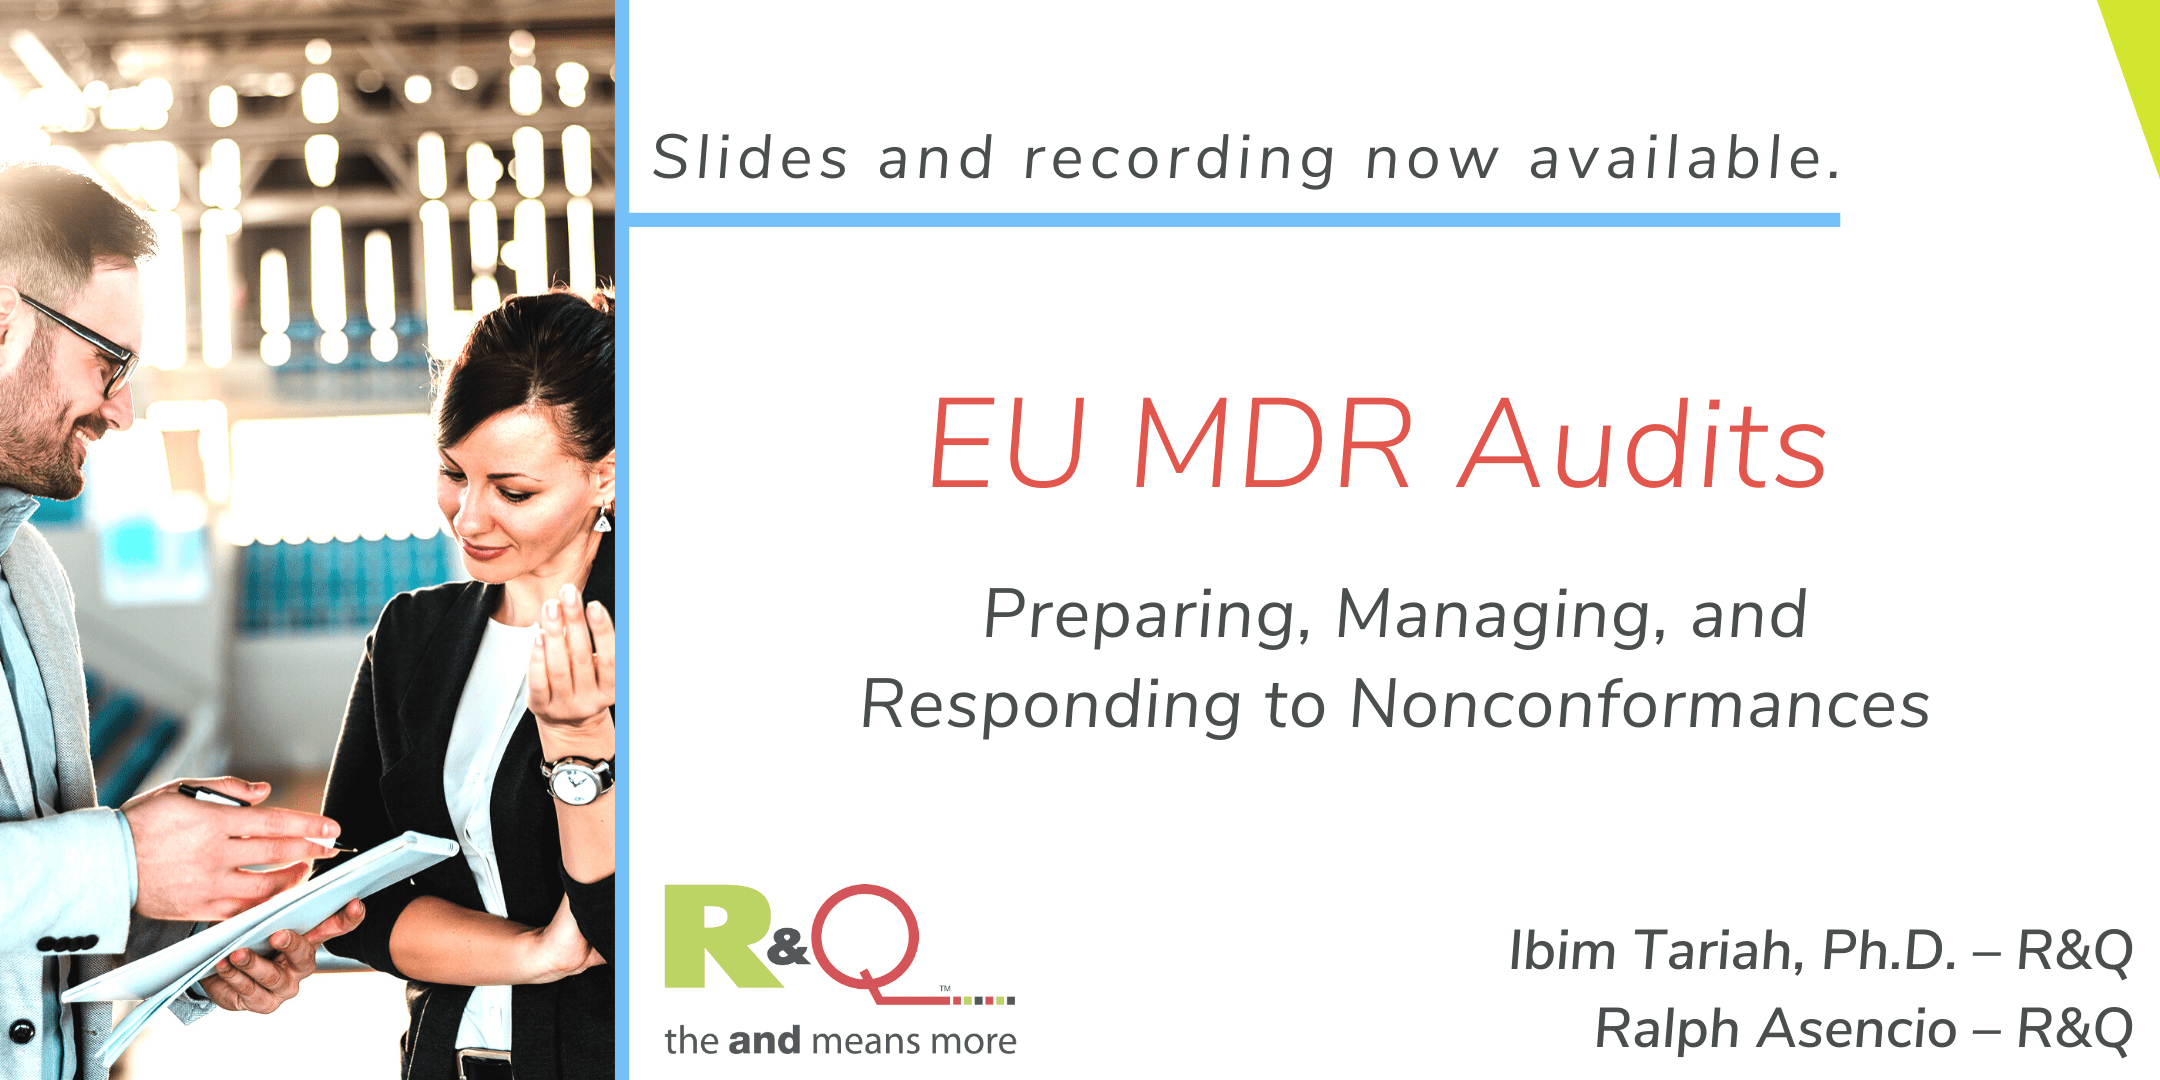 RQ_WB_EU_MDR_Audits_Slides_Now_Available-min